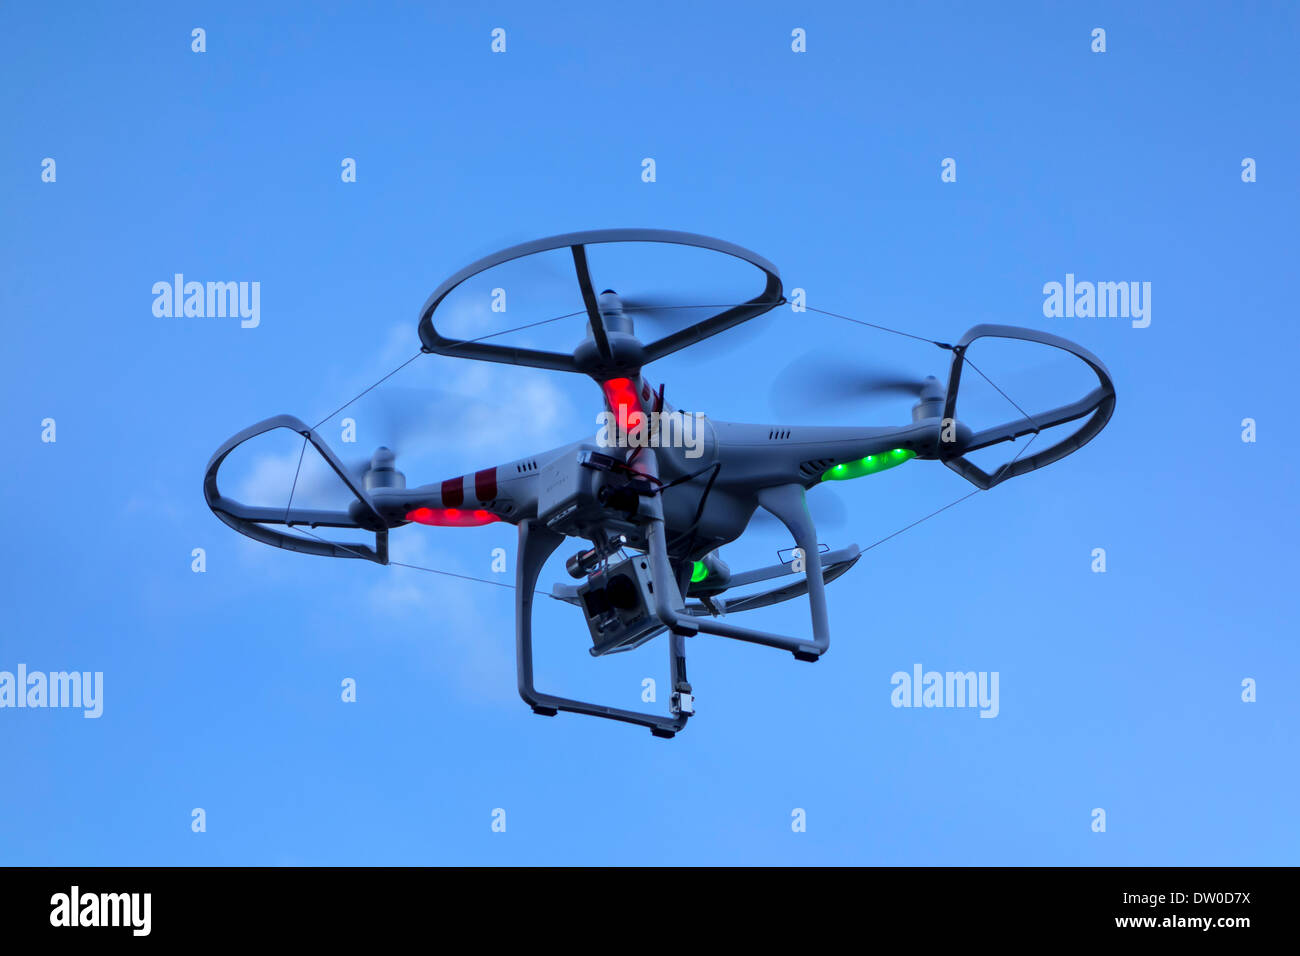 Miniature drone / unmanned aerial vehicle / UAV equipped with camera in flight against blue sky with clouds Stock Photo